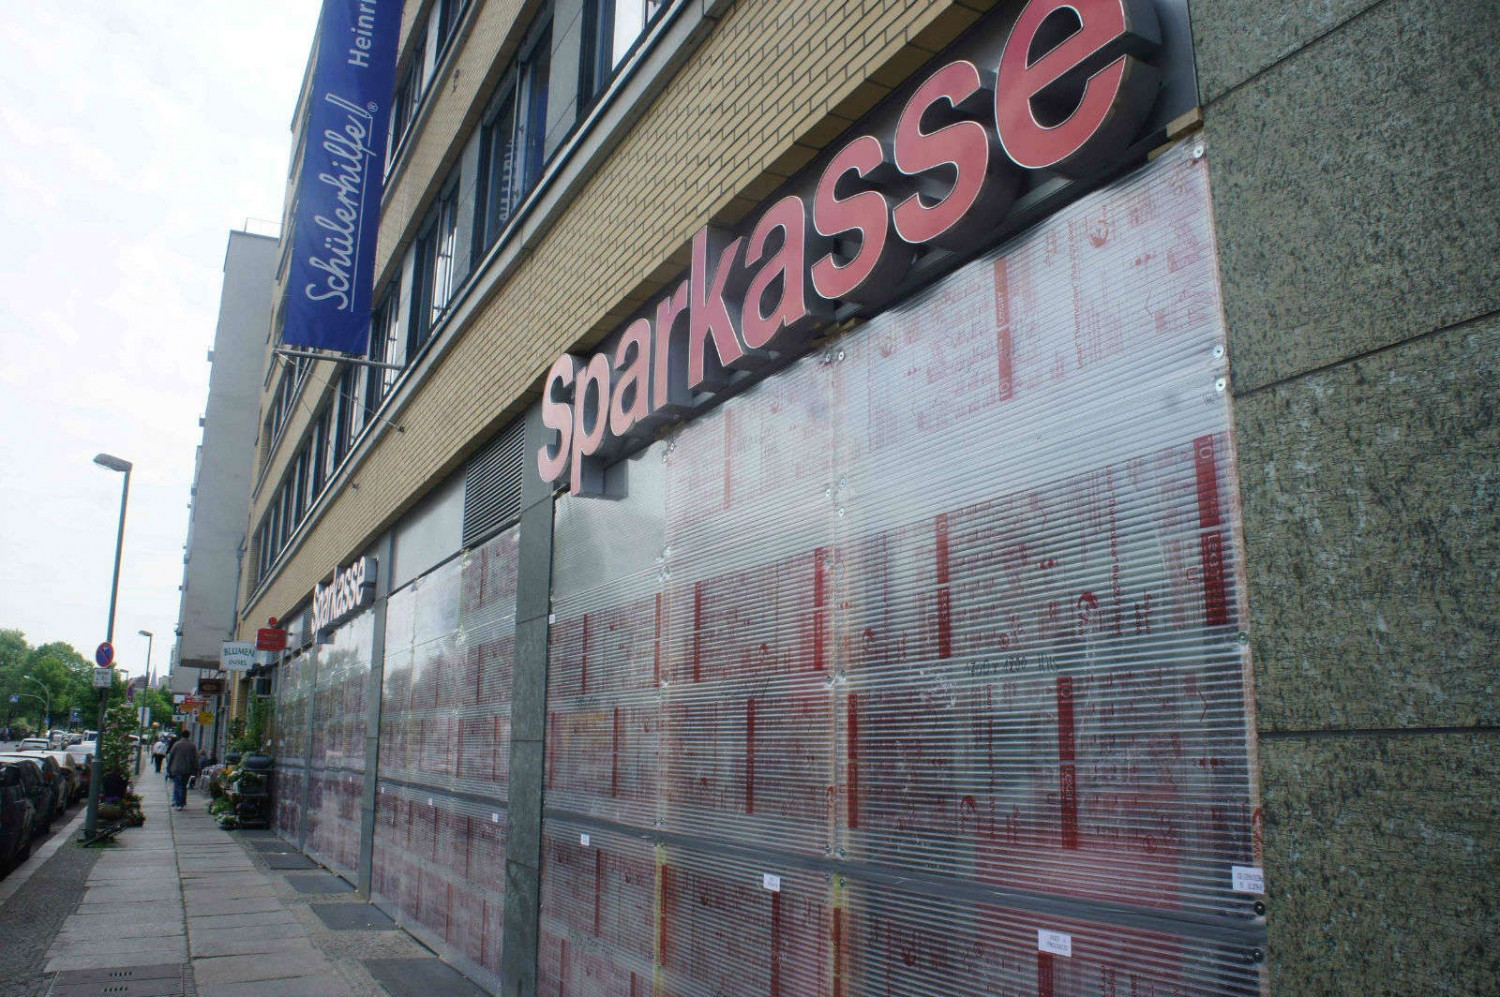 A boarded-up Sparkasse bank